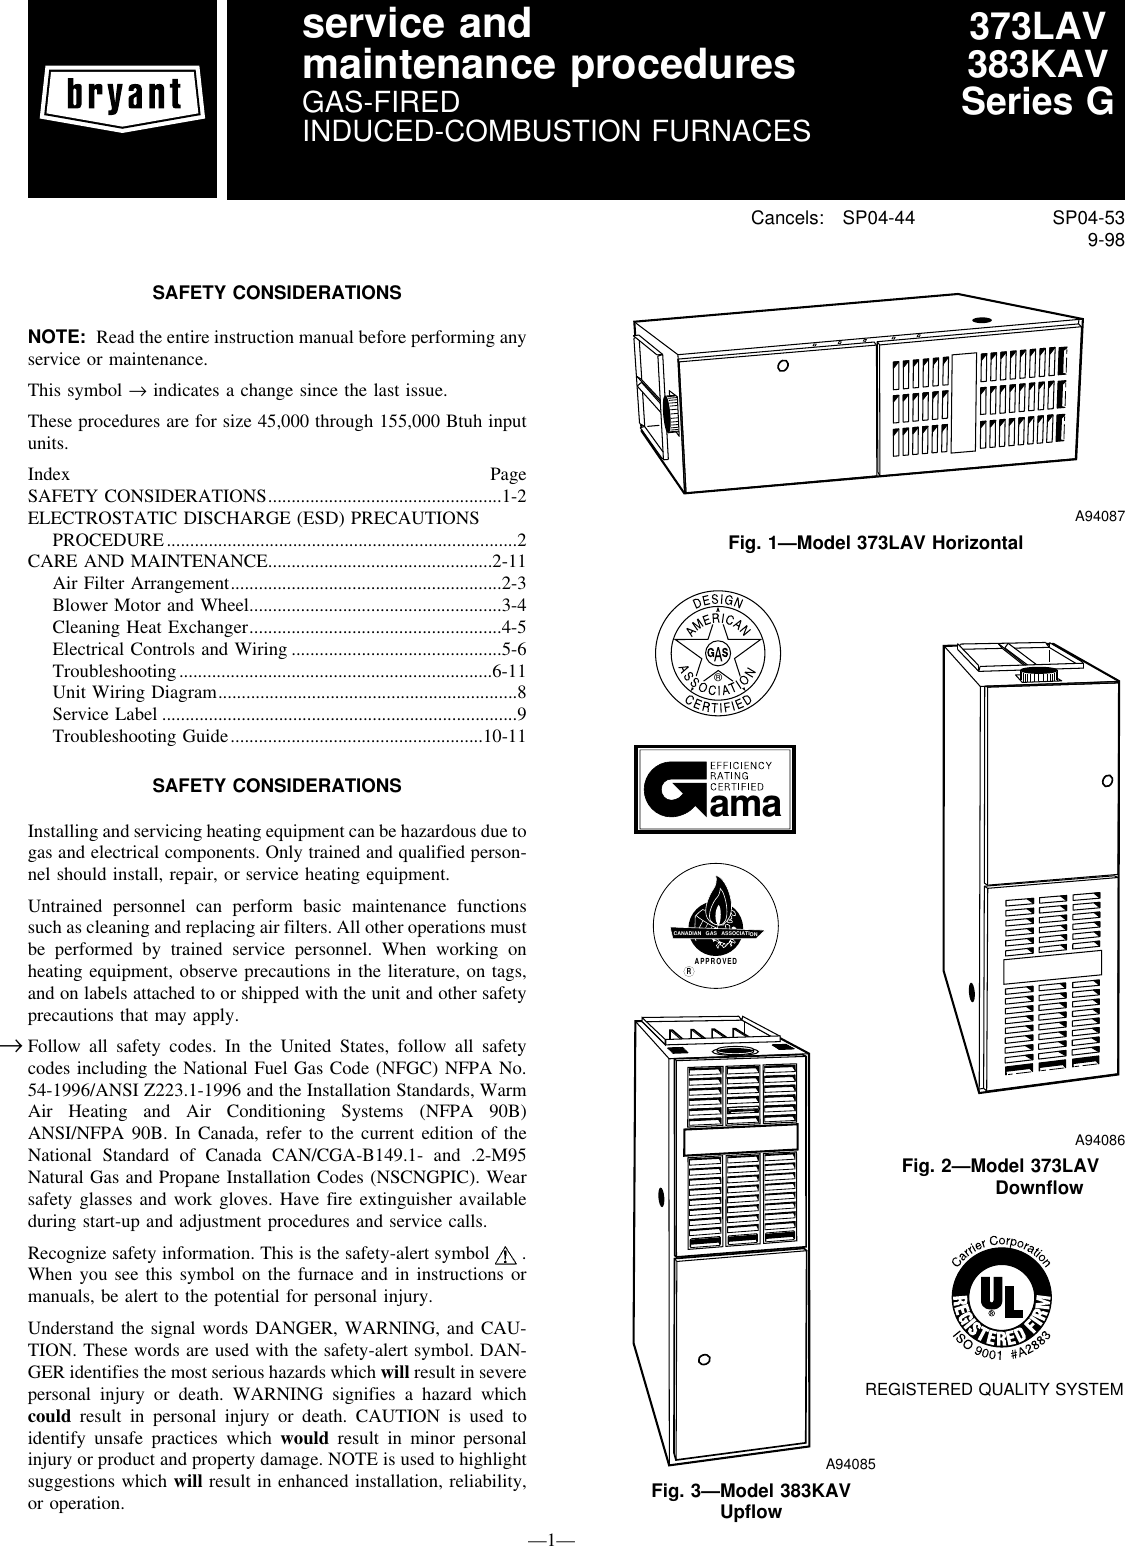 How To Inspect Hvac Systems Course Page 696 Manual Guide